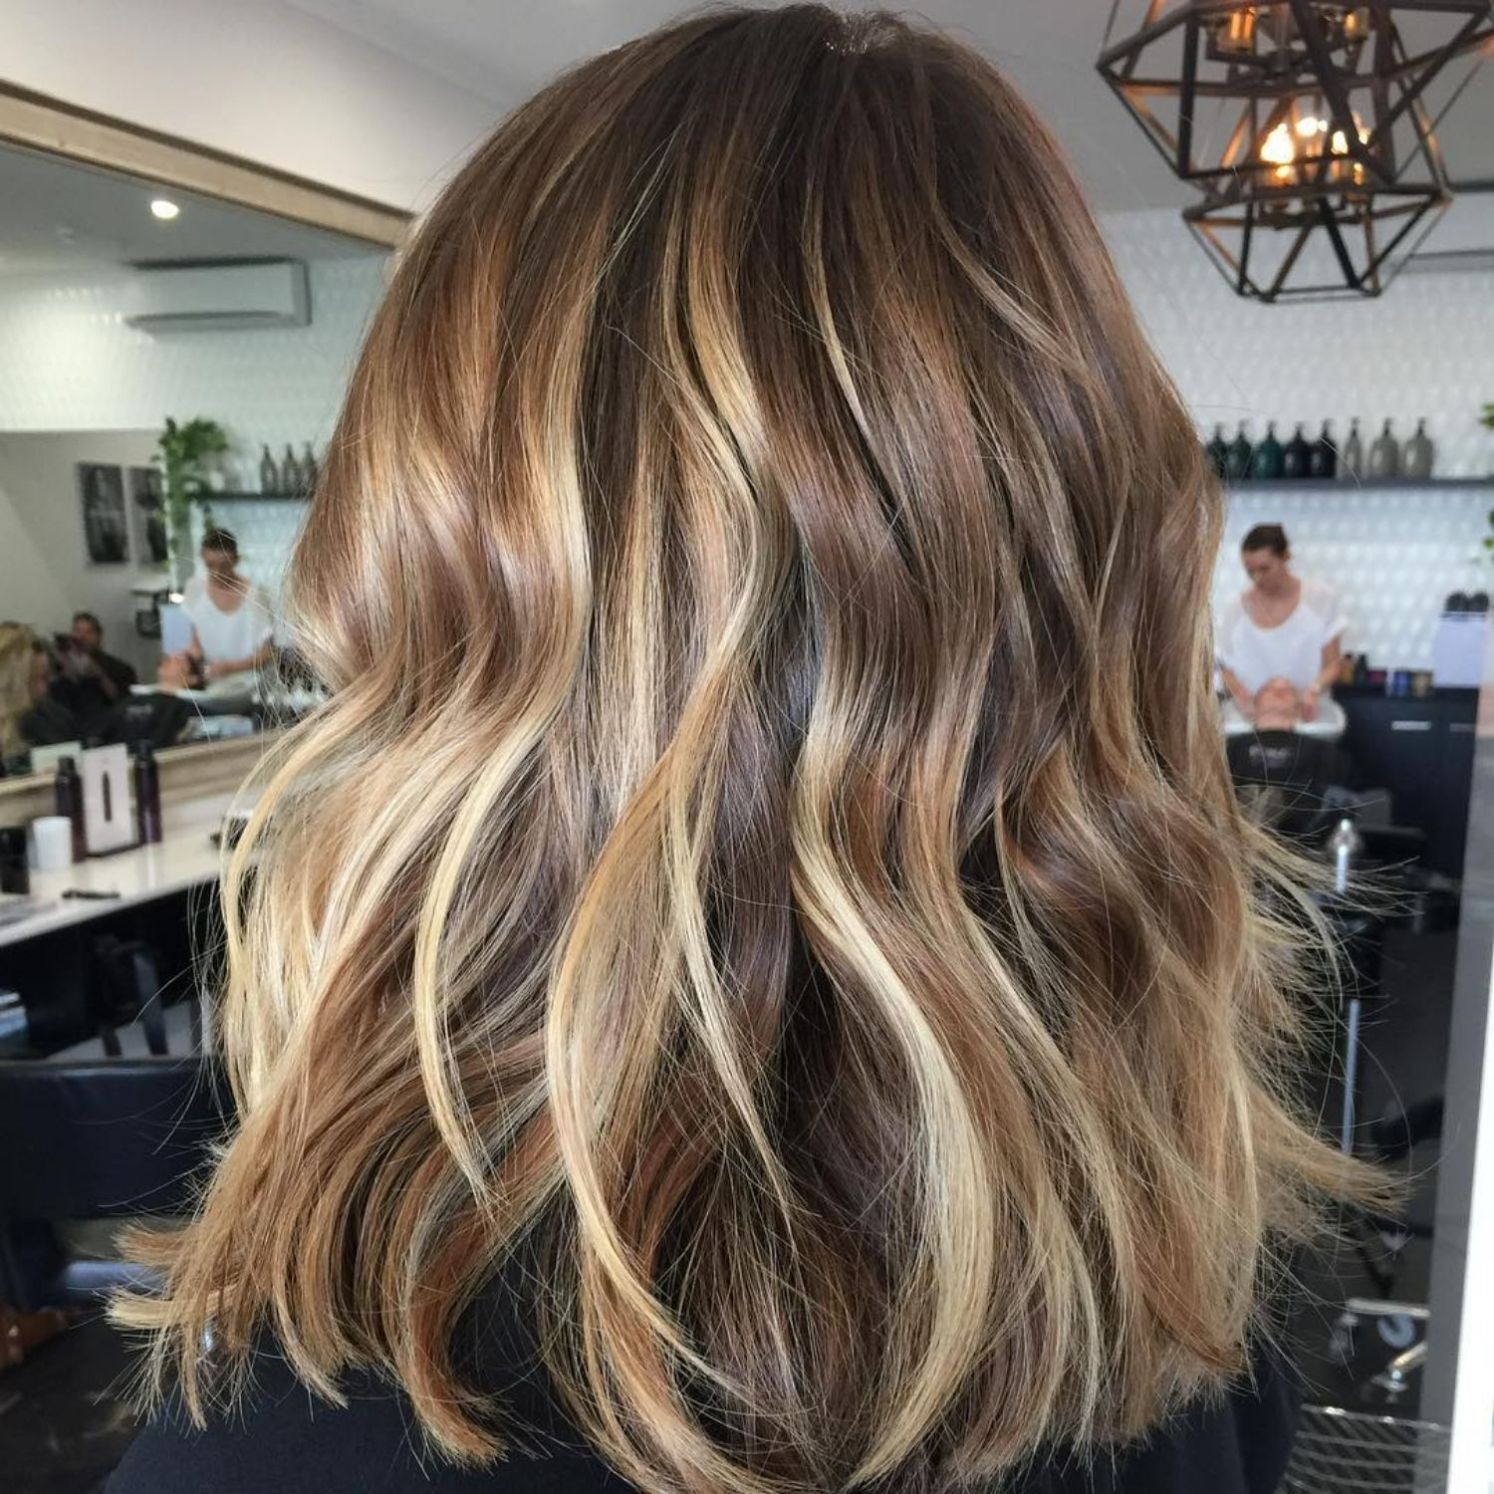 50 Ideas For Light Brown Hair With Highlights And Lowlights Hair Color Light Brown Brown Hair With Highlights Balayage Hair